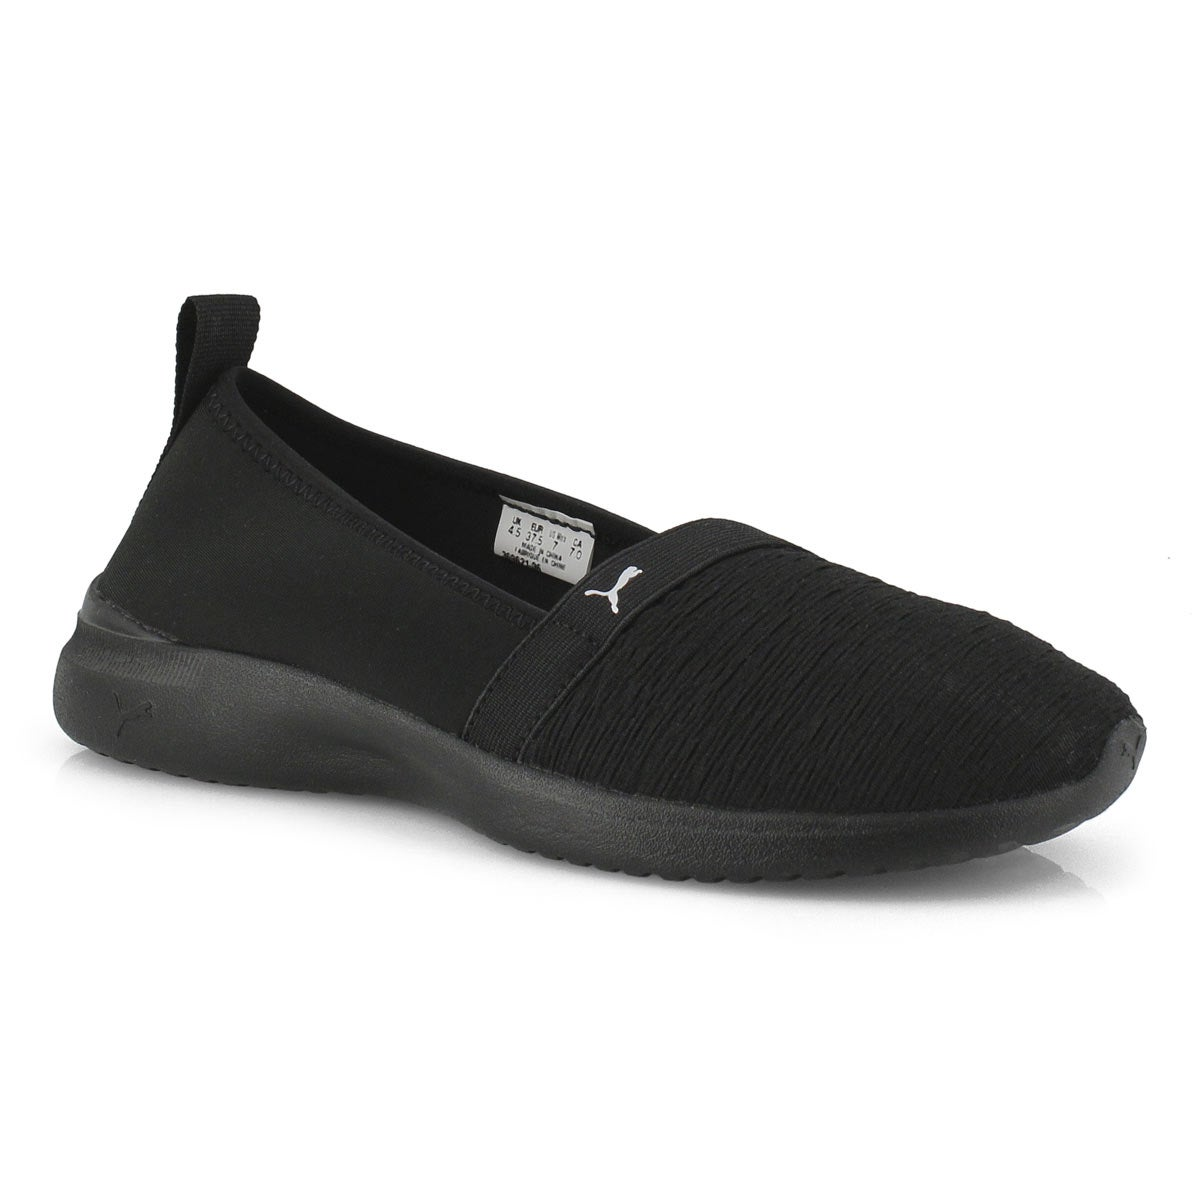 Lds Adelina black/black slip on